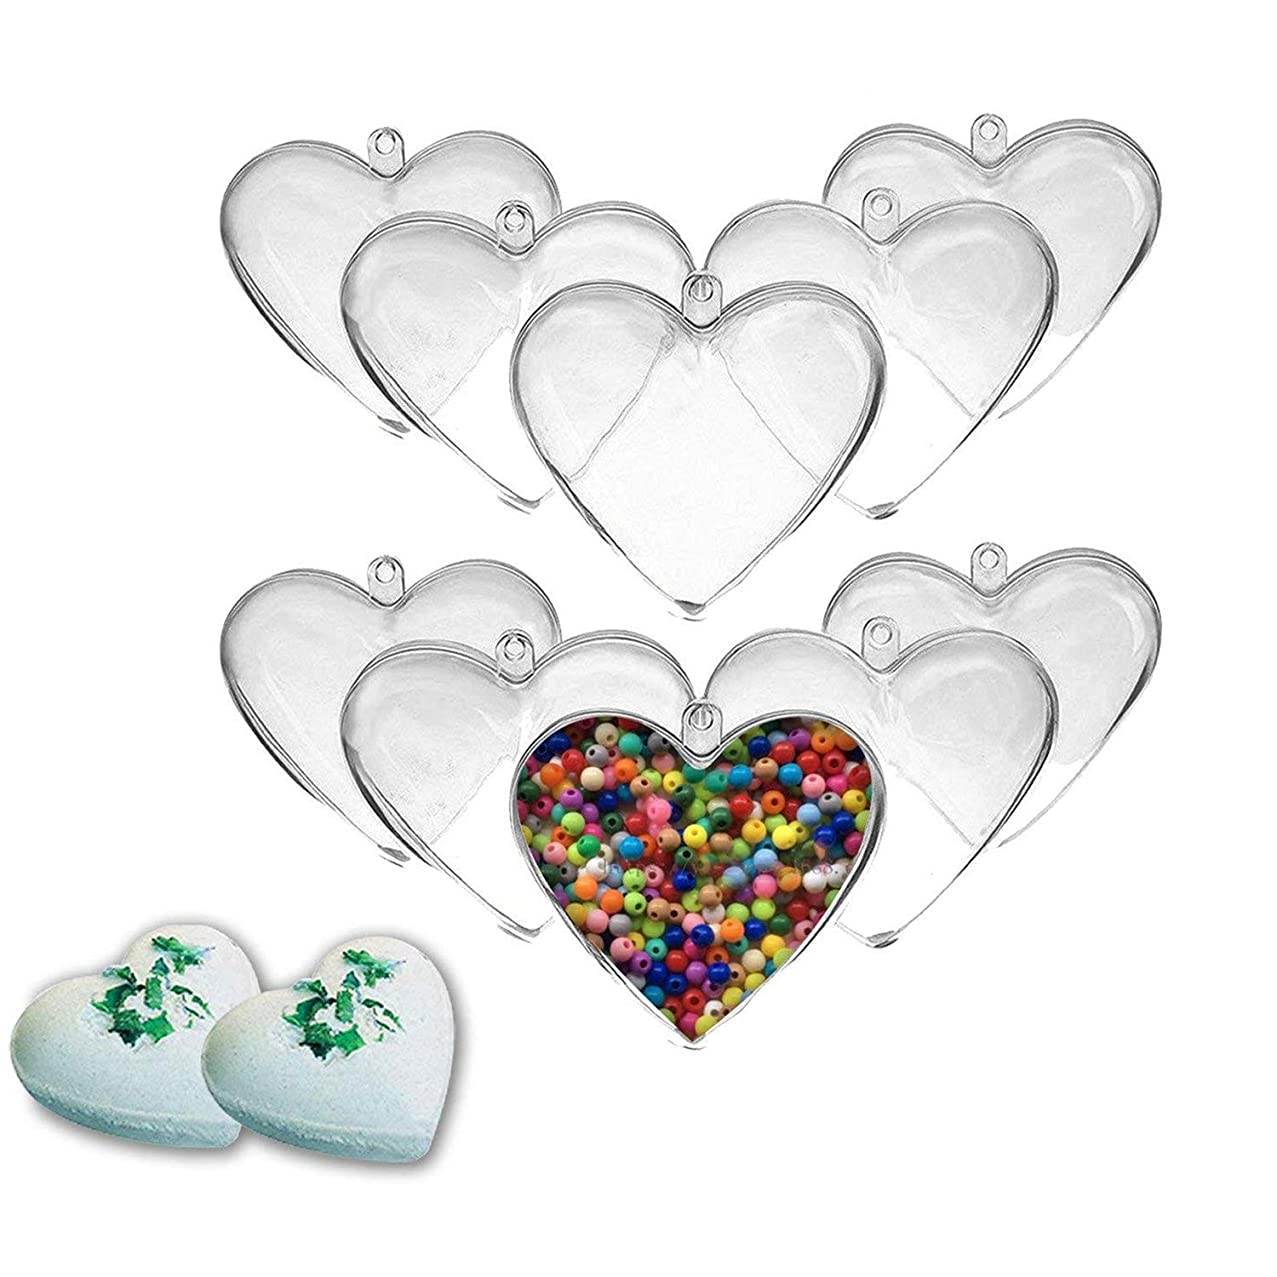 EMAZON ONLINE 2.5 Inch Clear DIY Plastic Heart Shape Fillable Christmas Tree Ornaments or Bath Bomb Molds,Pack of 10